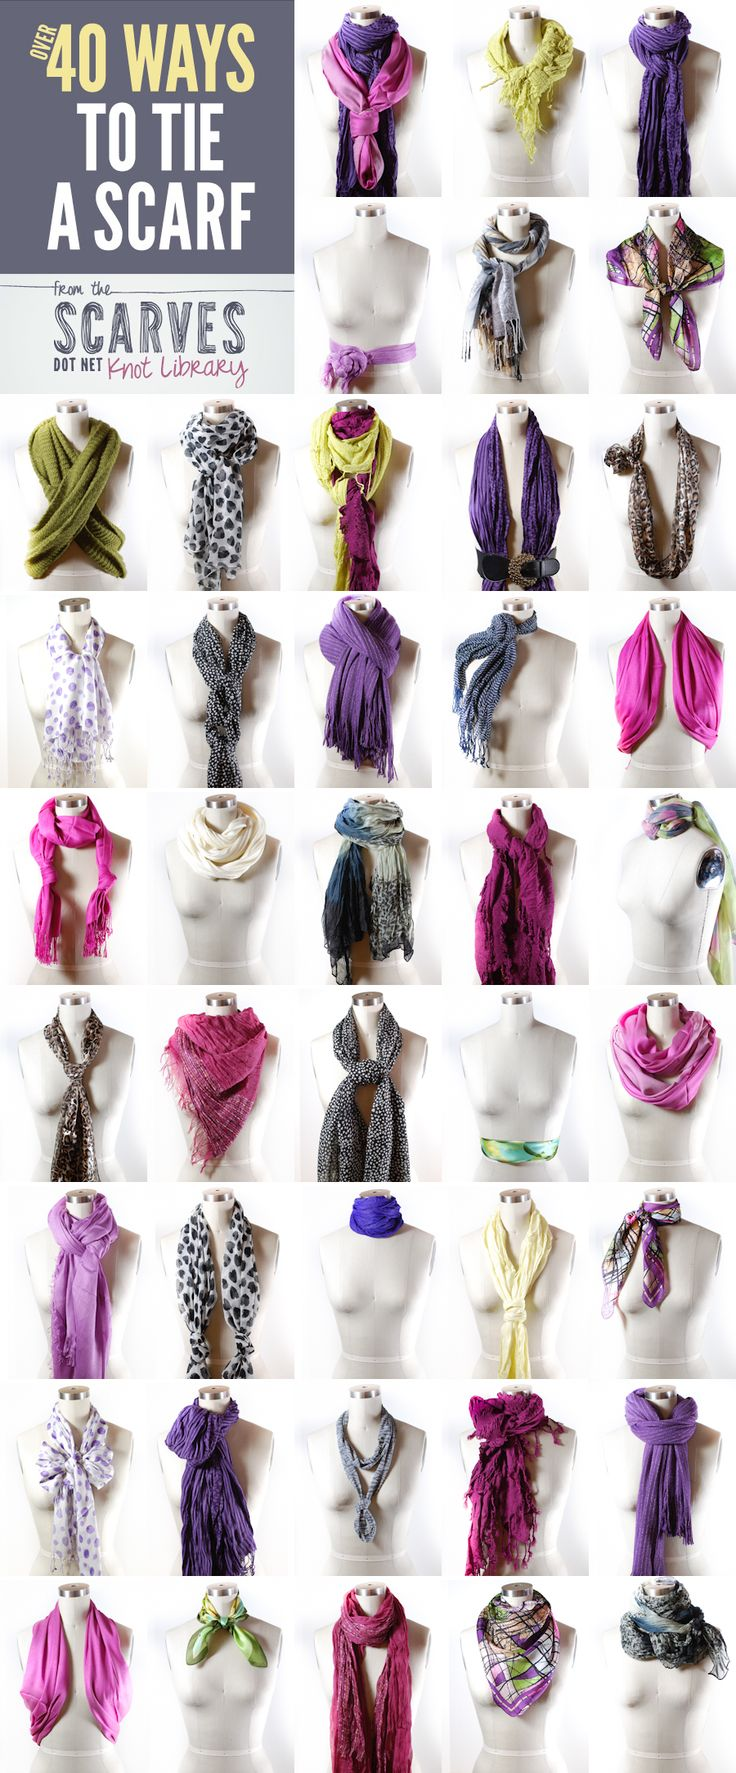 50+ Ways to Tie a Scarf...I might need this. Fall is coming!